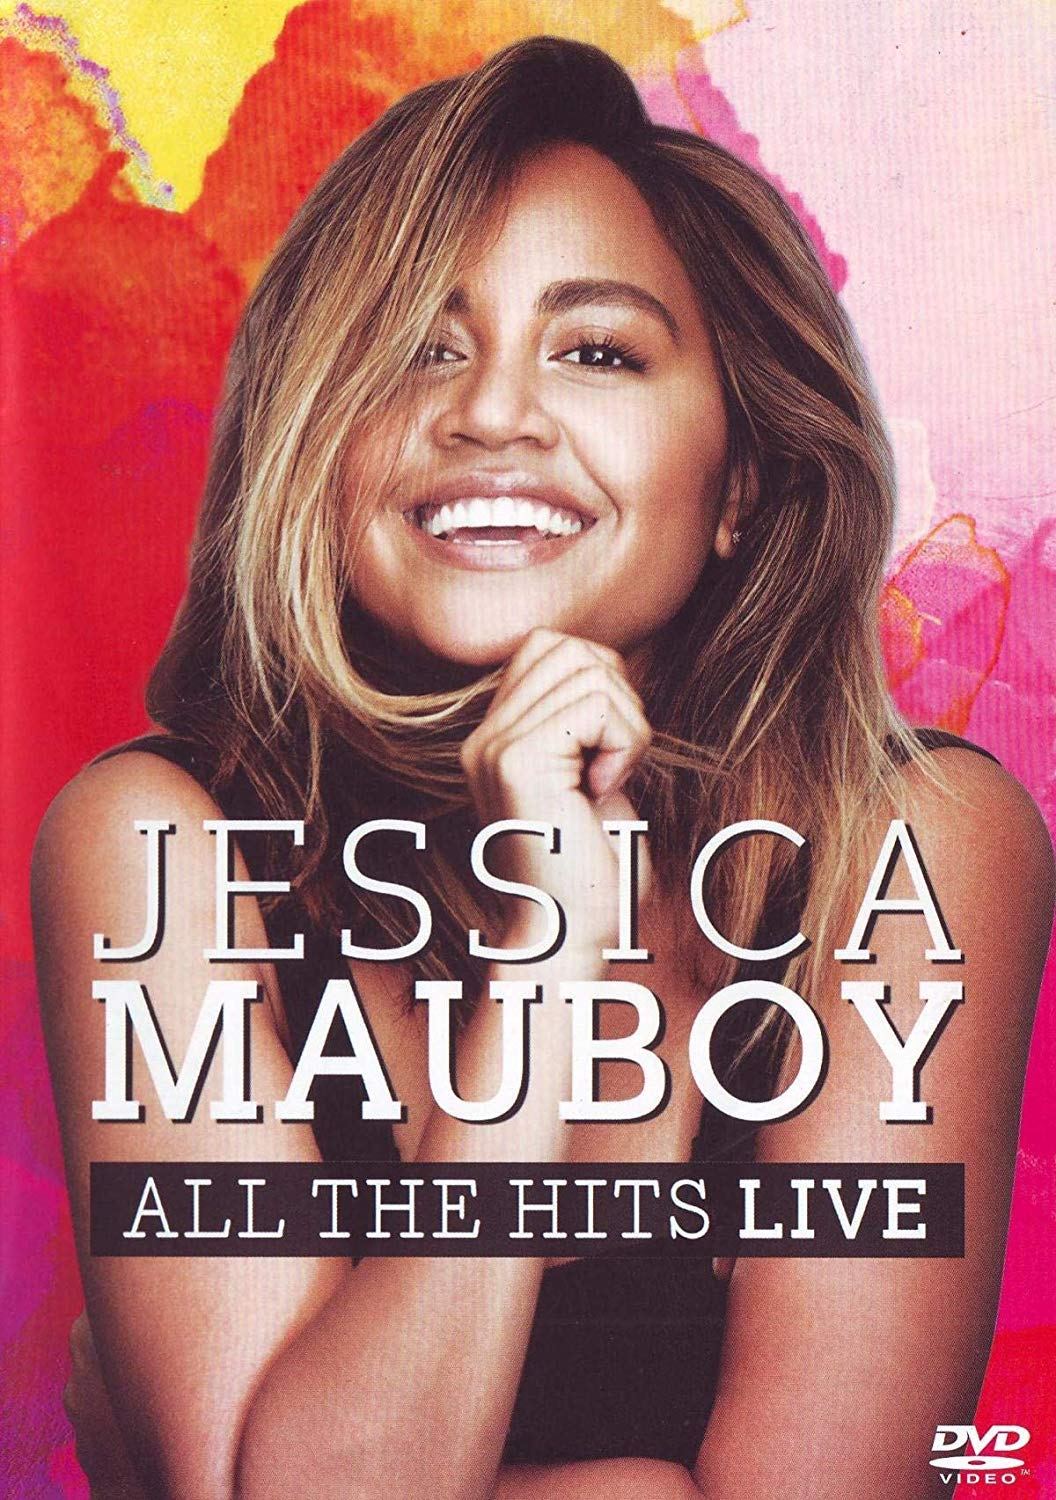 Blu-ray : JESSICA MAUBOY - Jessica Mauboy: All The Hits Live (Australia - Import, Pal Region 0)